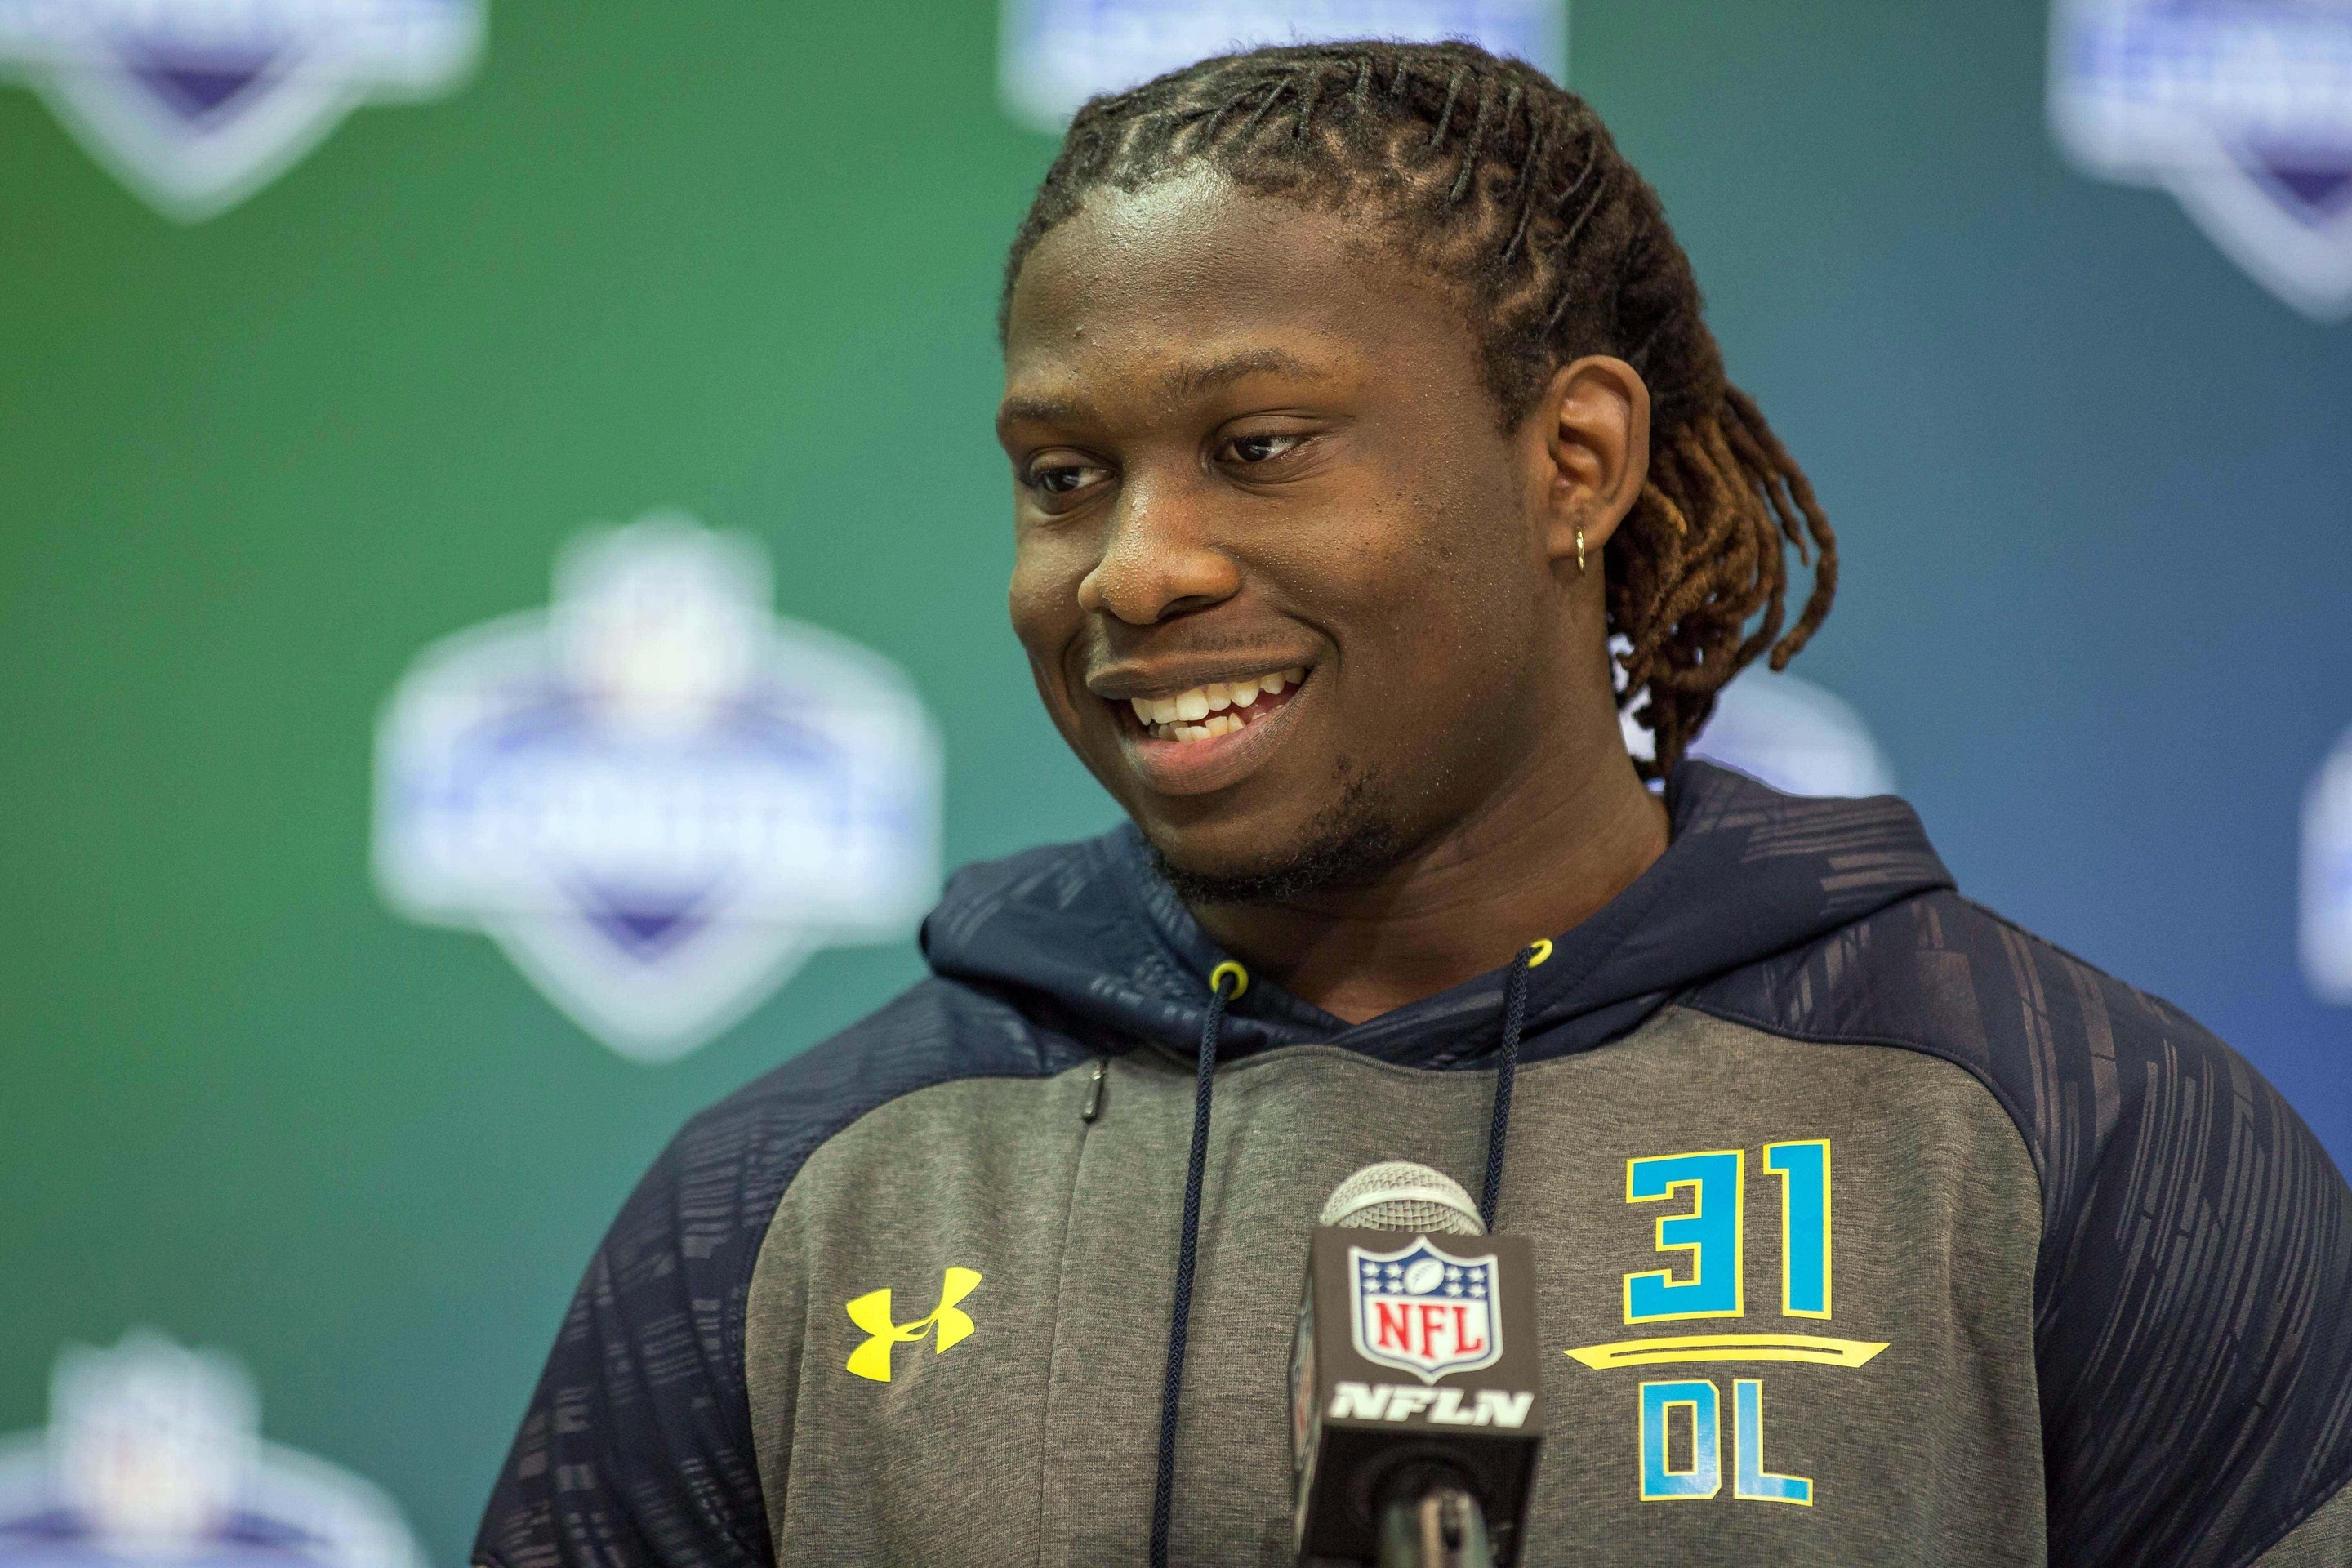 Mar 4, 2017; Indianapolis, IN, USA; UCLA defensive end Takkarist Mckinley speaks to the media during the 2017 combine at Indiana Convention Center. Mandatory Credit: Trevor Ruszkowski-USA TODAY Sports